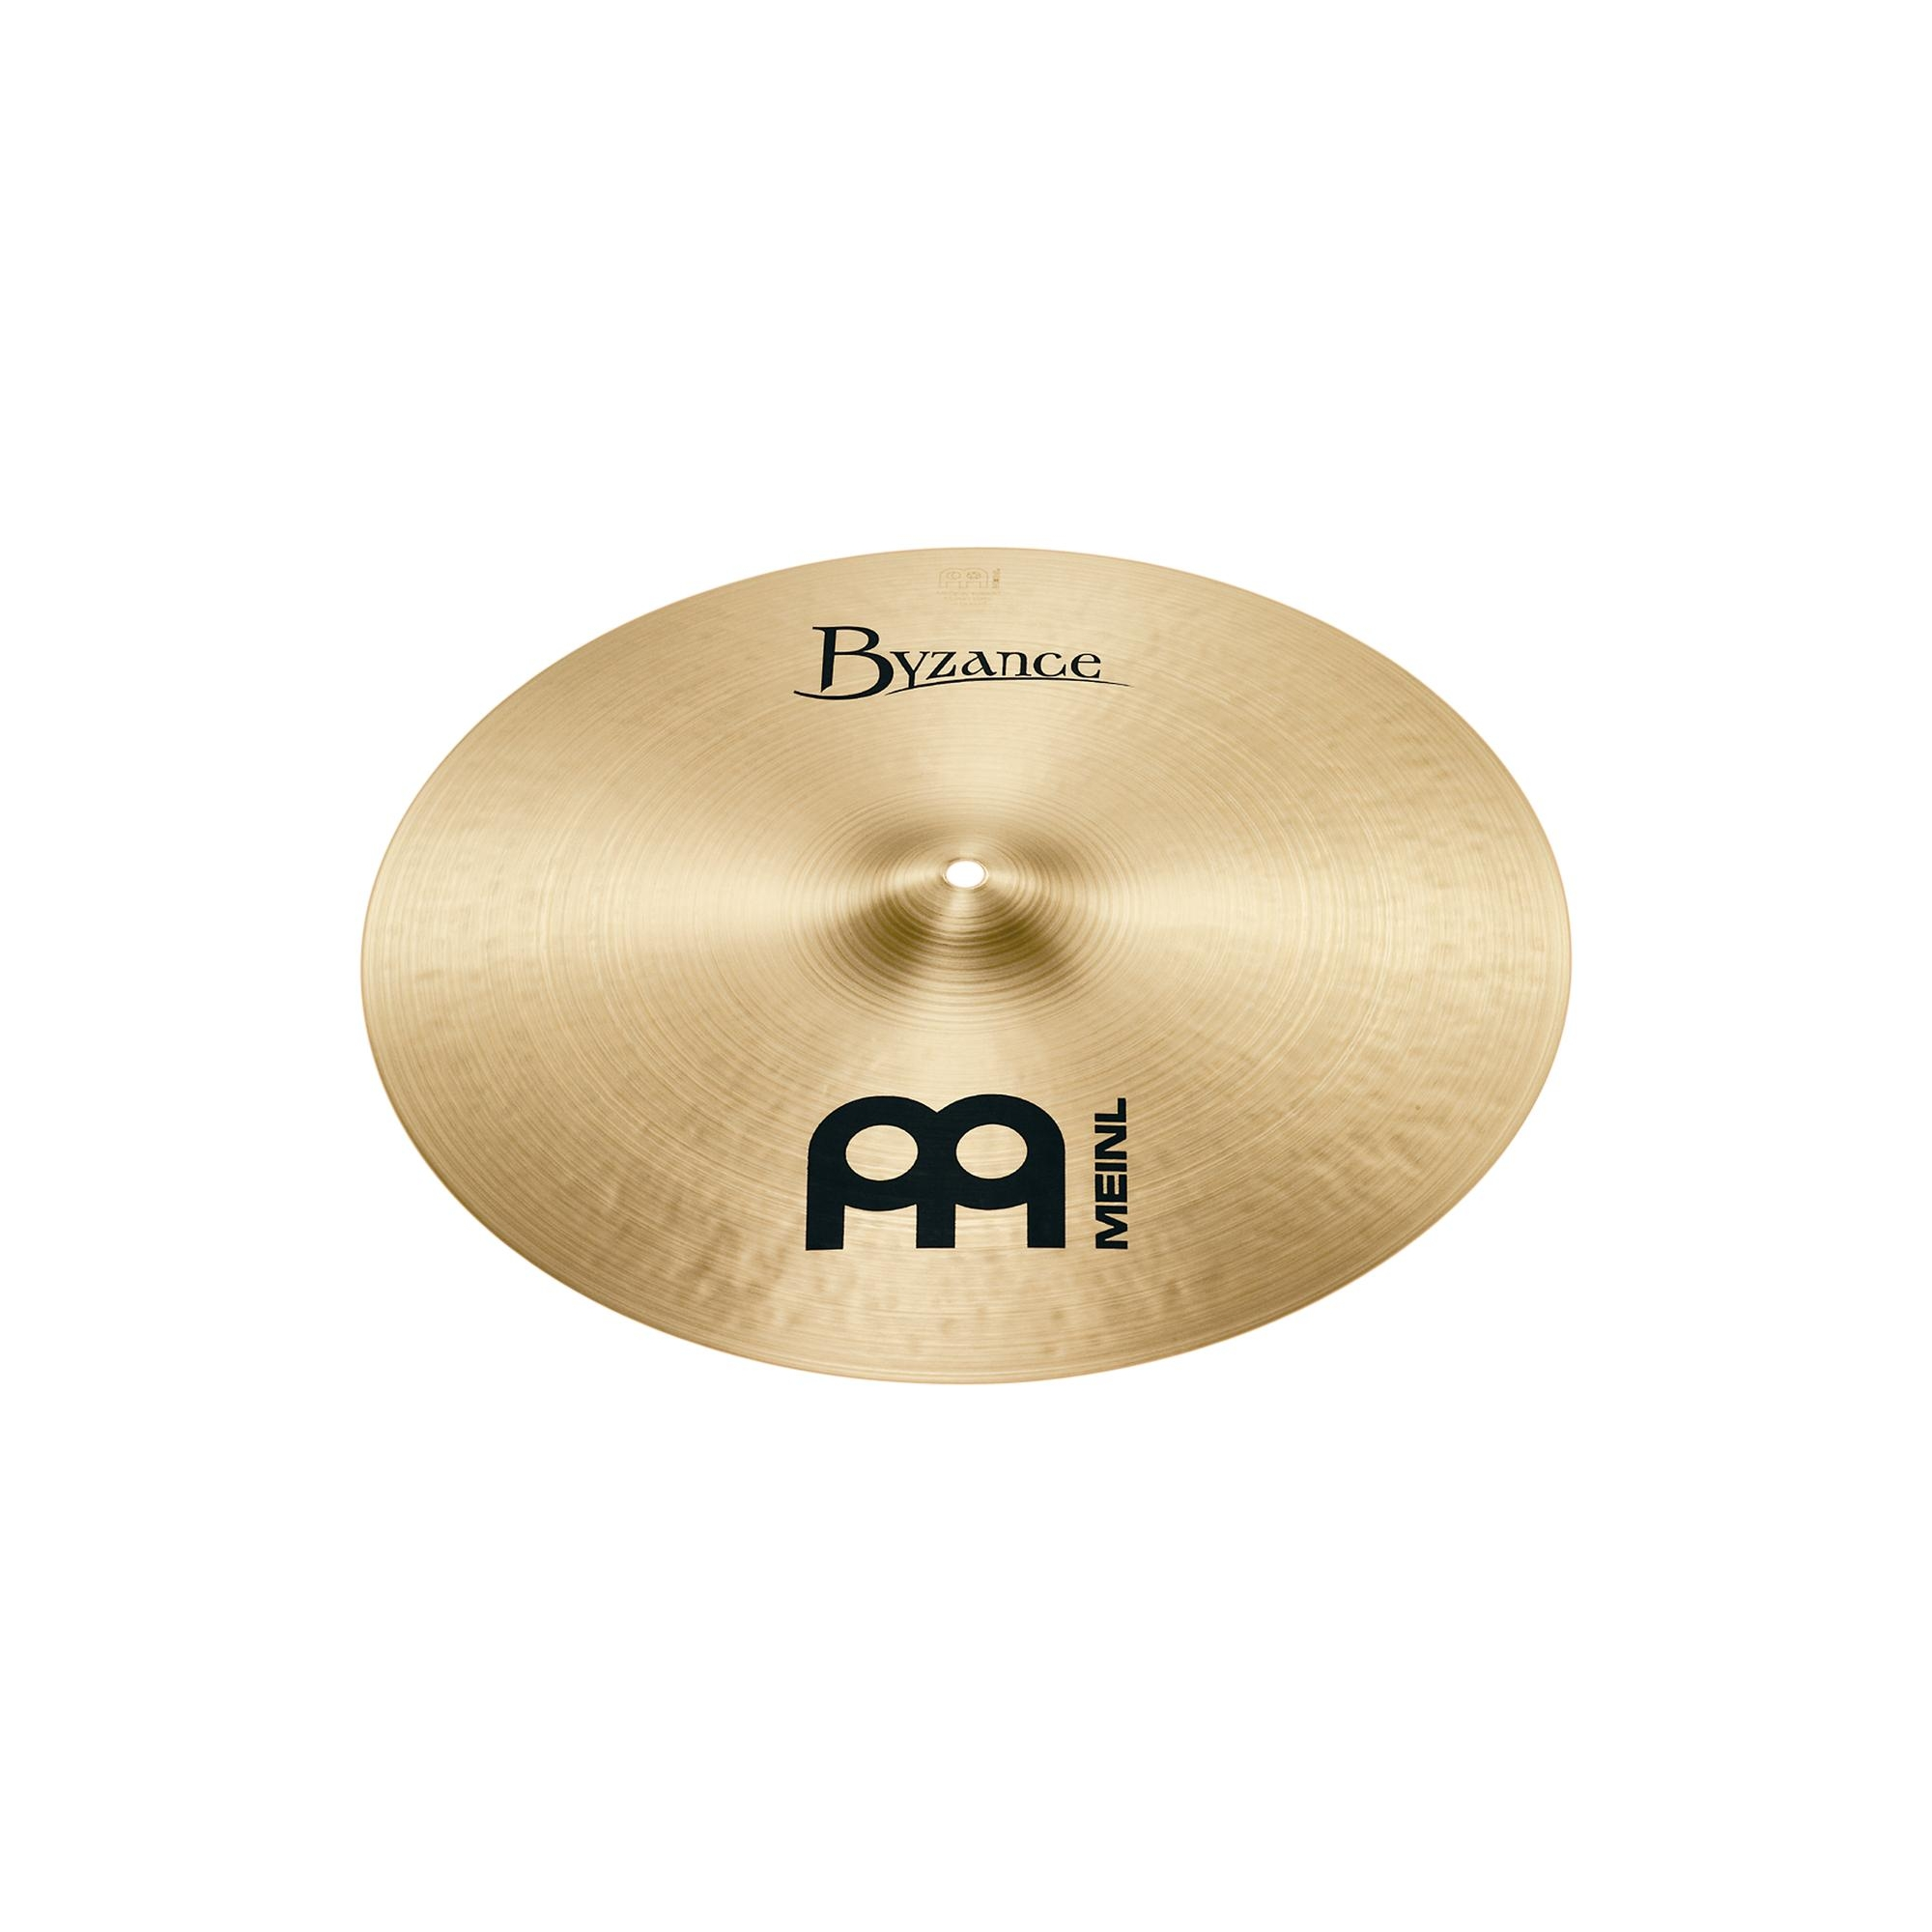 "Meinl Cymbal Byzance traditional 16"" Crash medium"